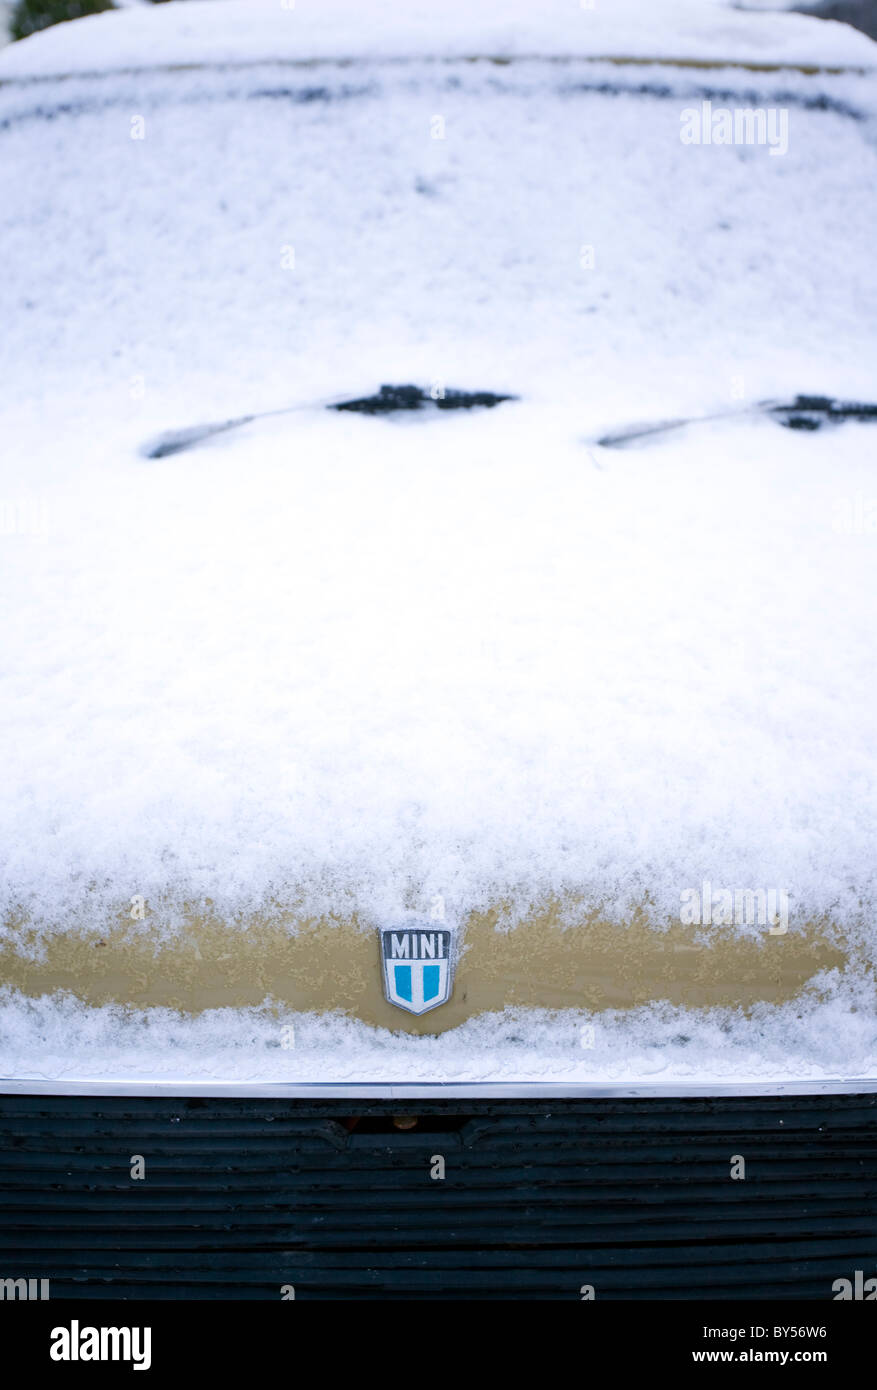 An old mini car covered by snow with its badge showing - Stock Image